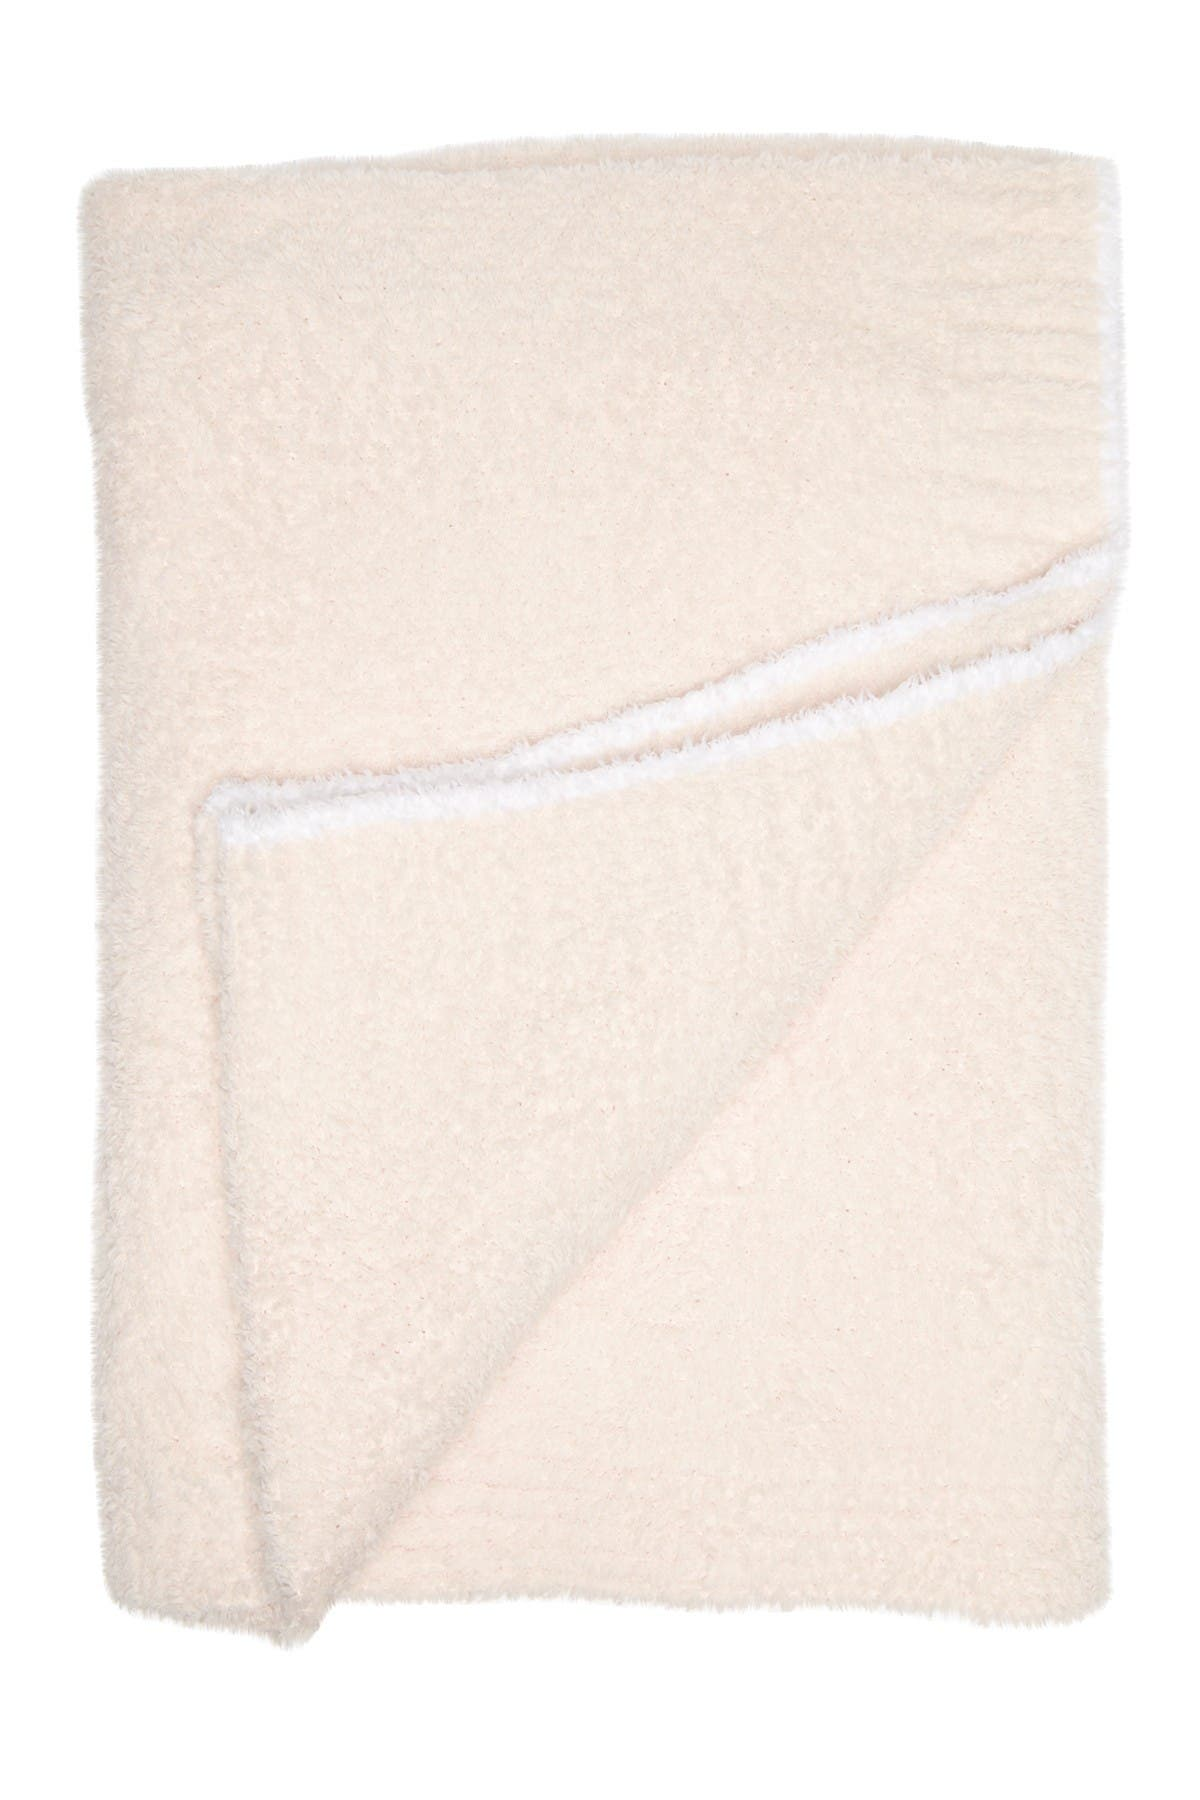 "Image of Barefoot Dreams CozyChic Rib Trim Throw - 45"" x 60"""